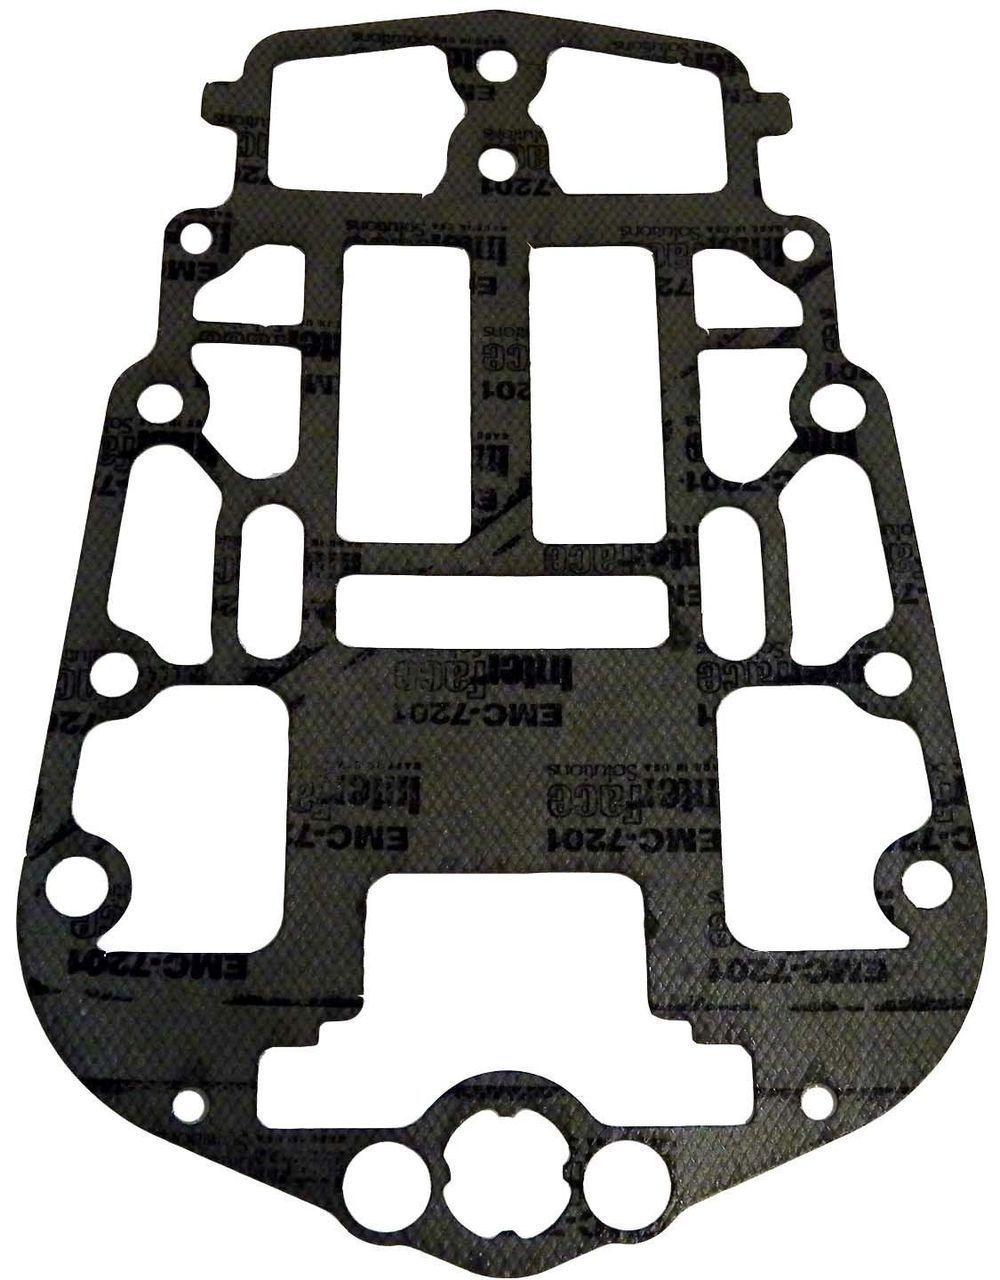 Johnson / Evinrude 115/130 Hp E-Tec Base Gasket 4 Cylinder 0352909